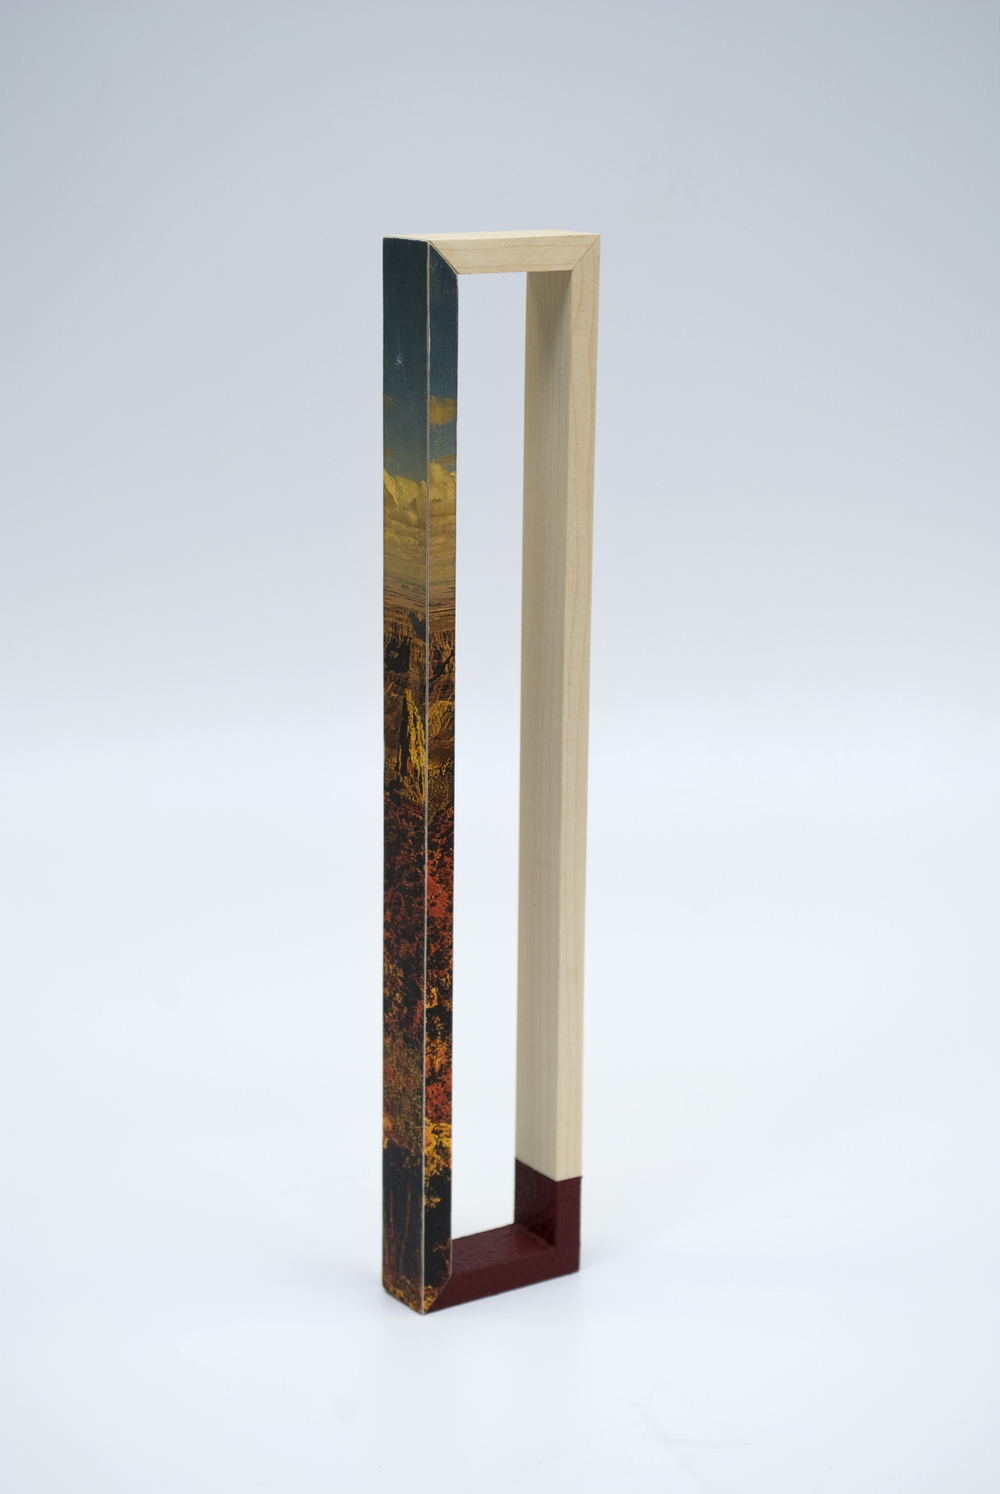 Maquette 8 , 2015  8 x 2 x .5 inches  Paint, wood, found image